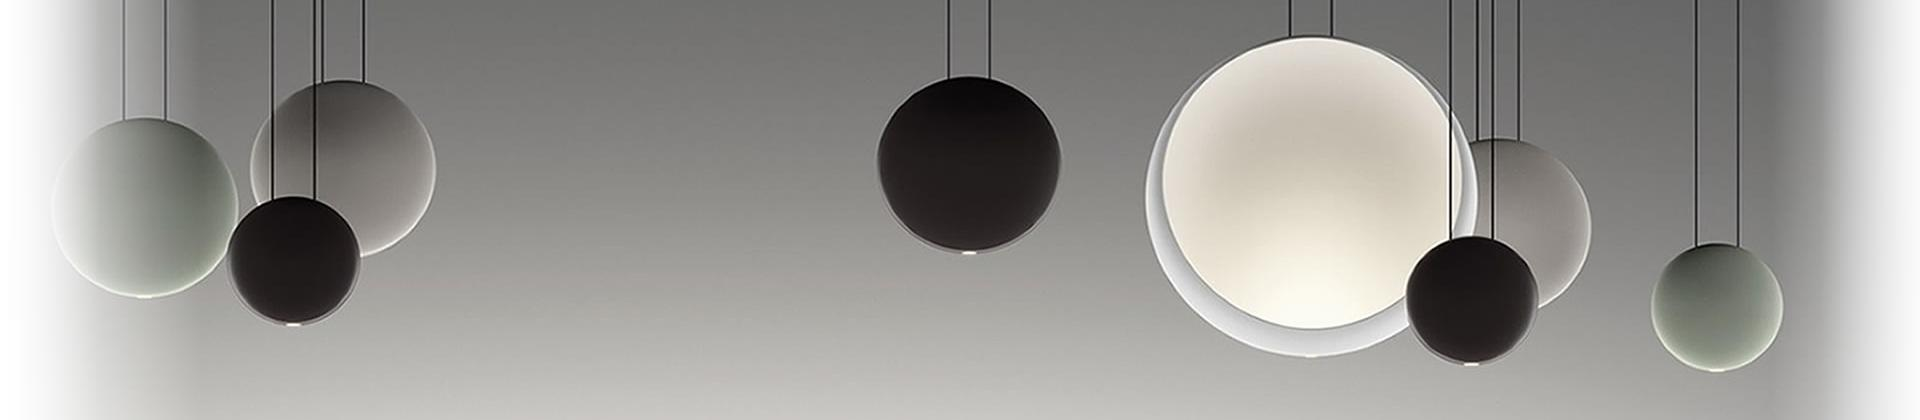 Design lamps Link by Vibia